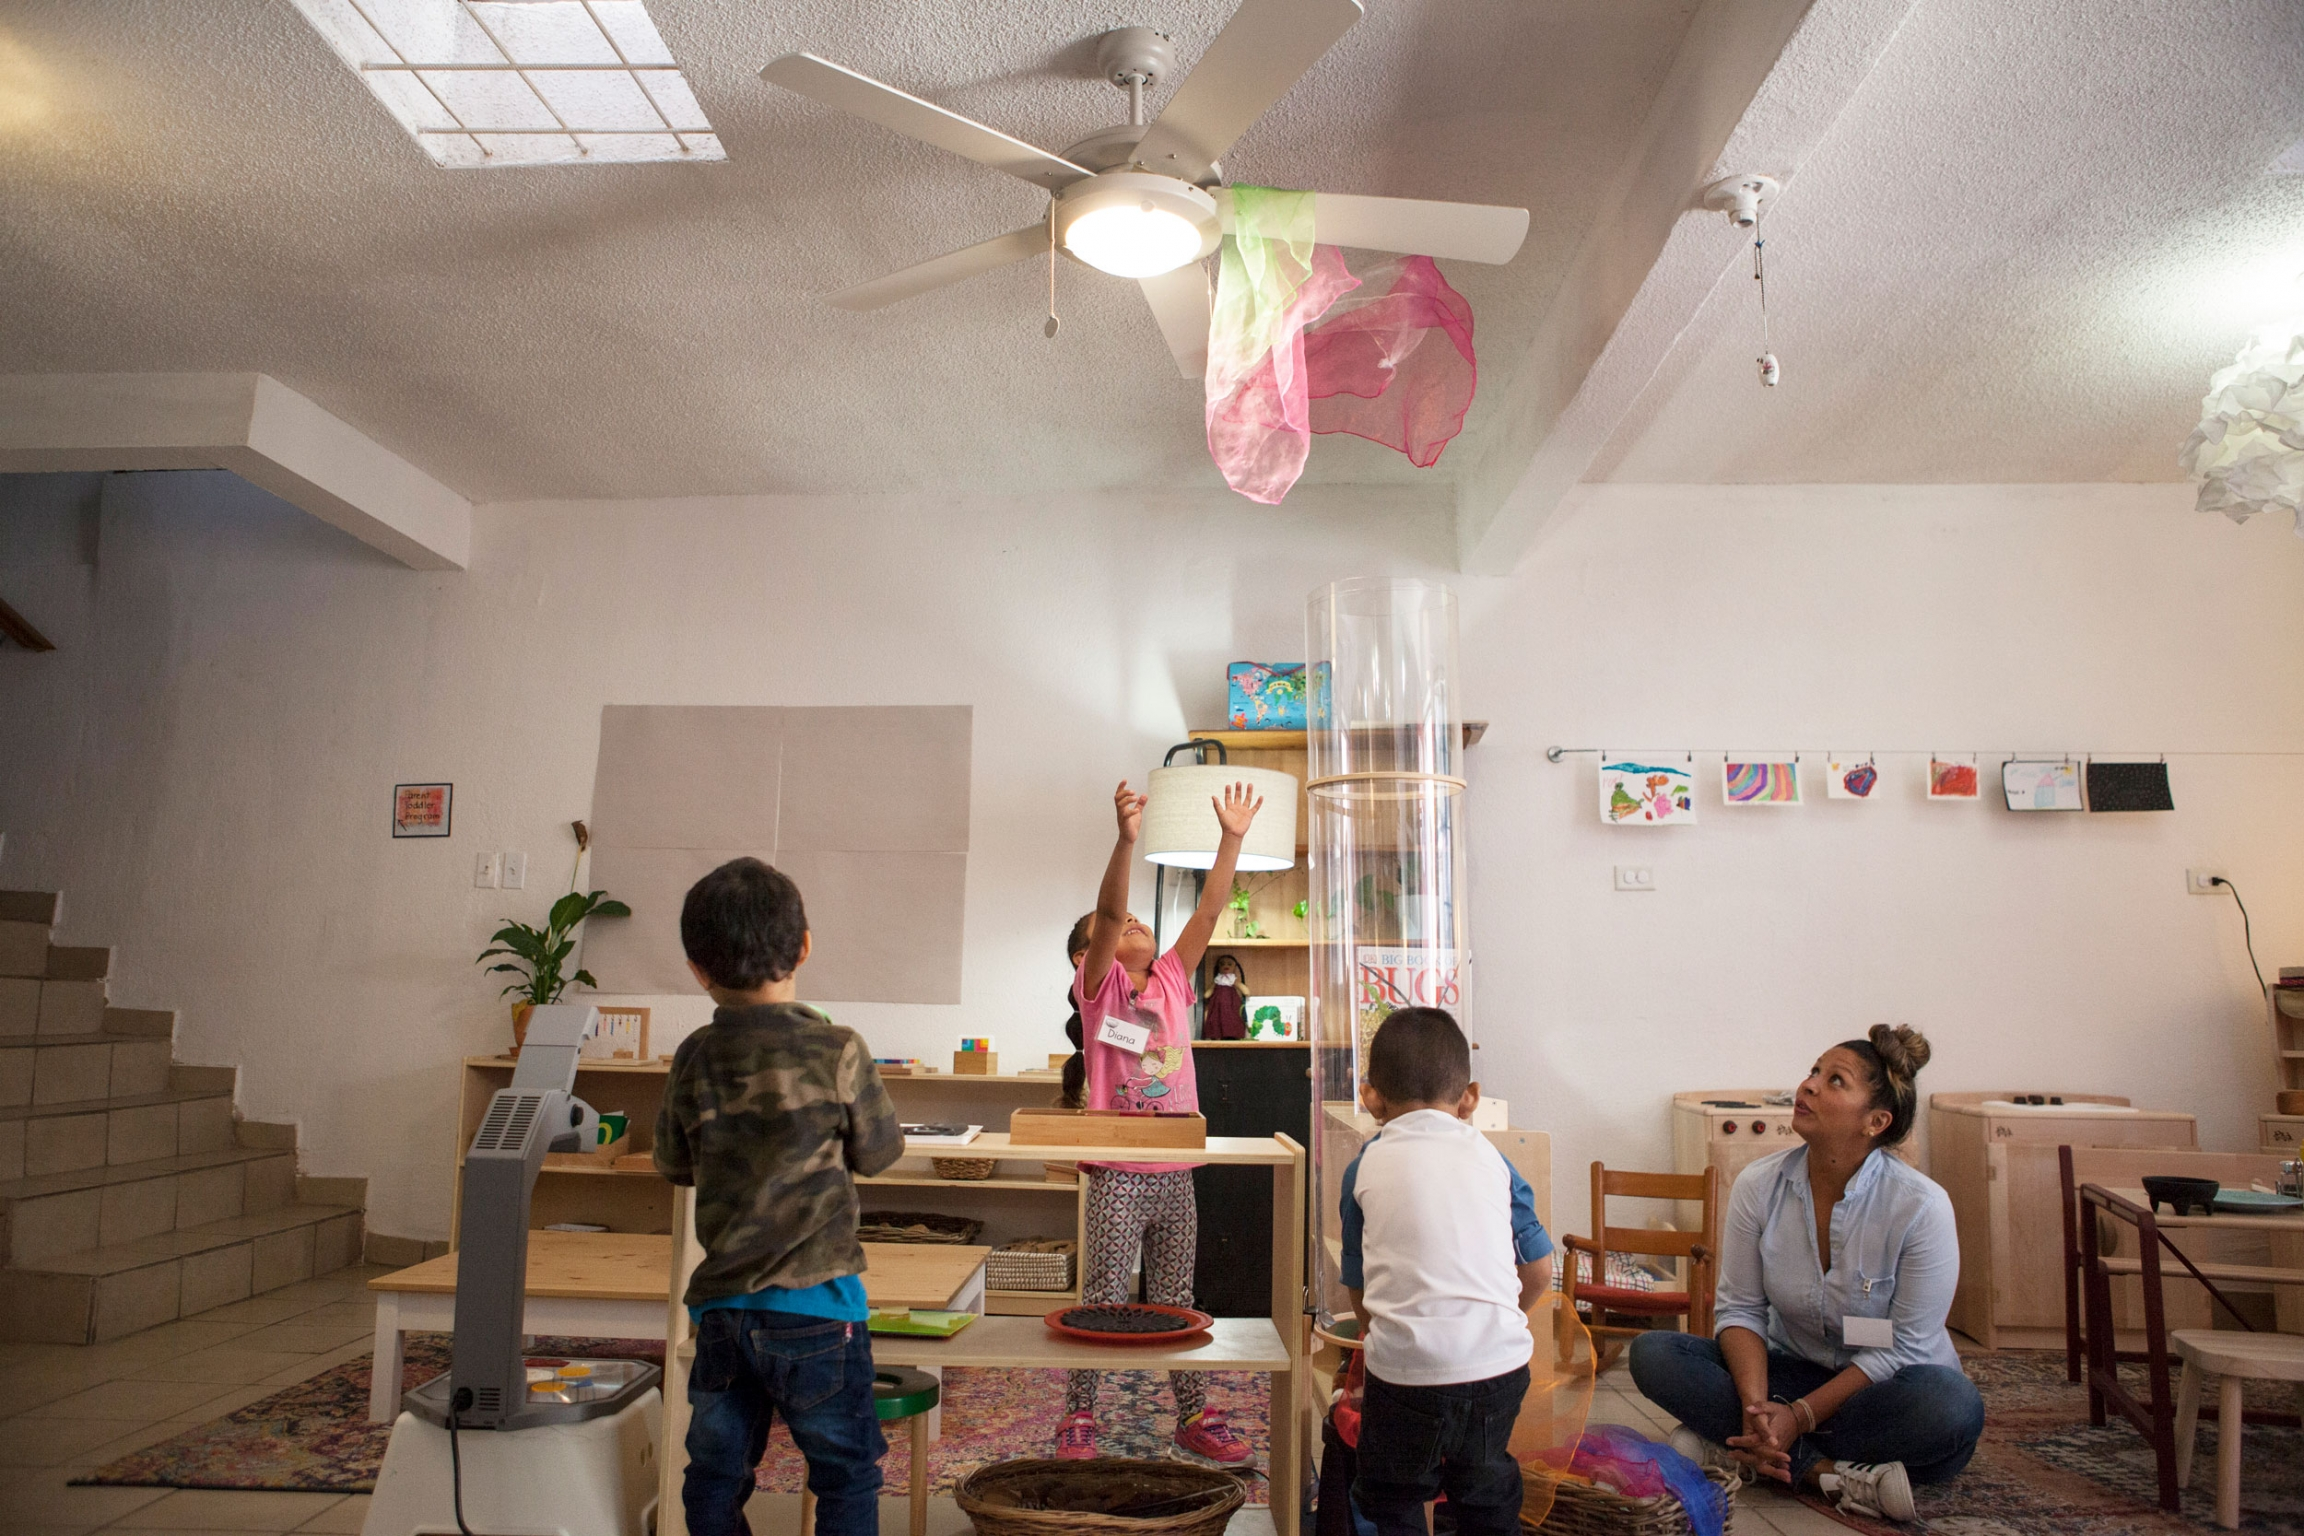 Several children are shown playing with a pink and white scarf shown caught attached to a ceiling fan.